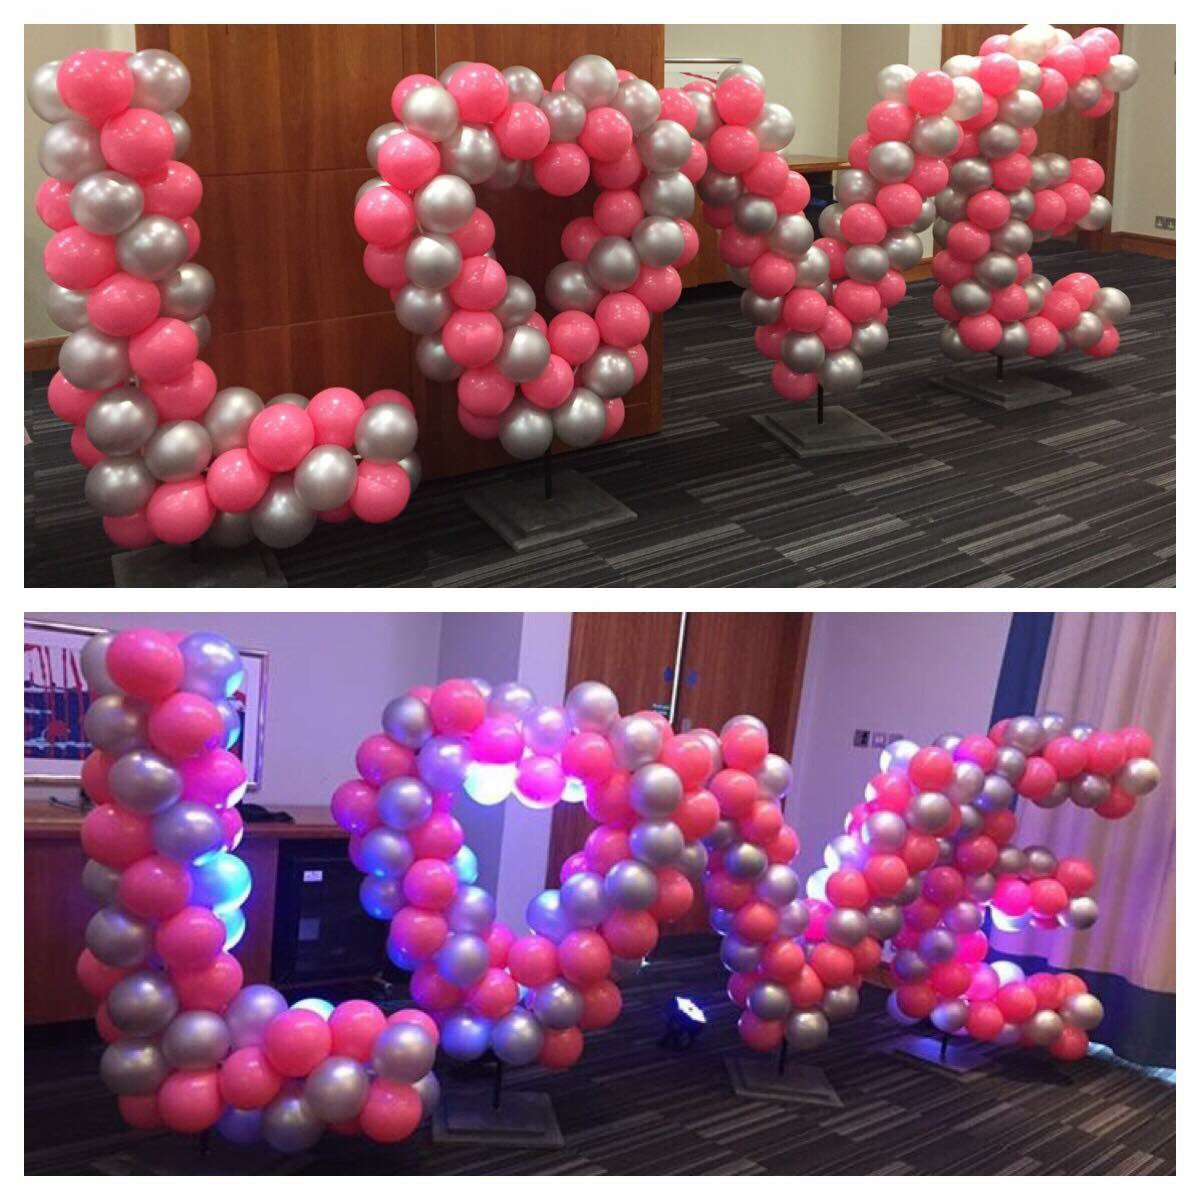 Our fabulous #balloon #LOVE  letters ! #wedding #engagement #party #celebration<br>http://pic.twitter.com/oQxv7lilRj